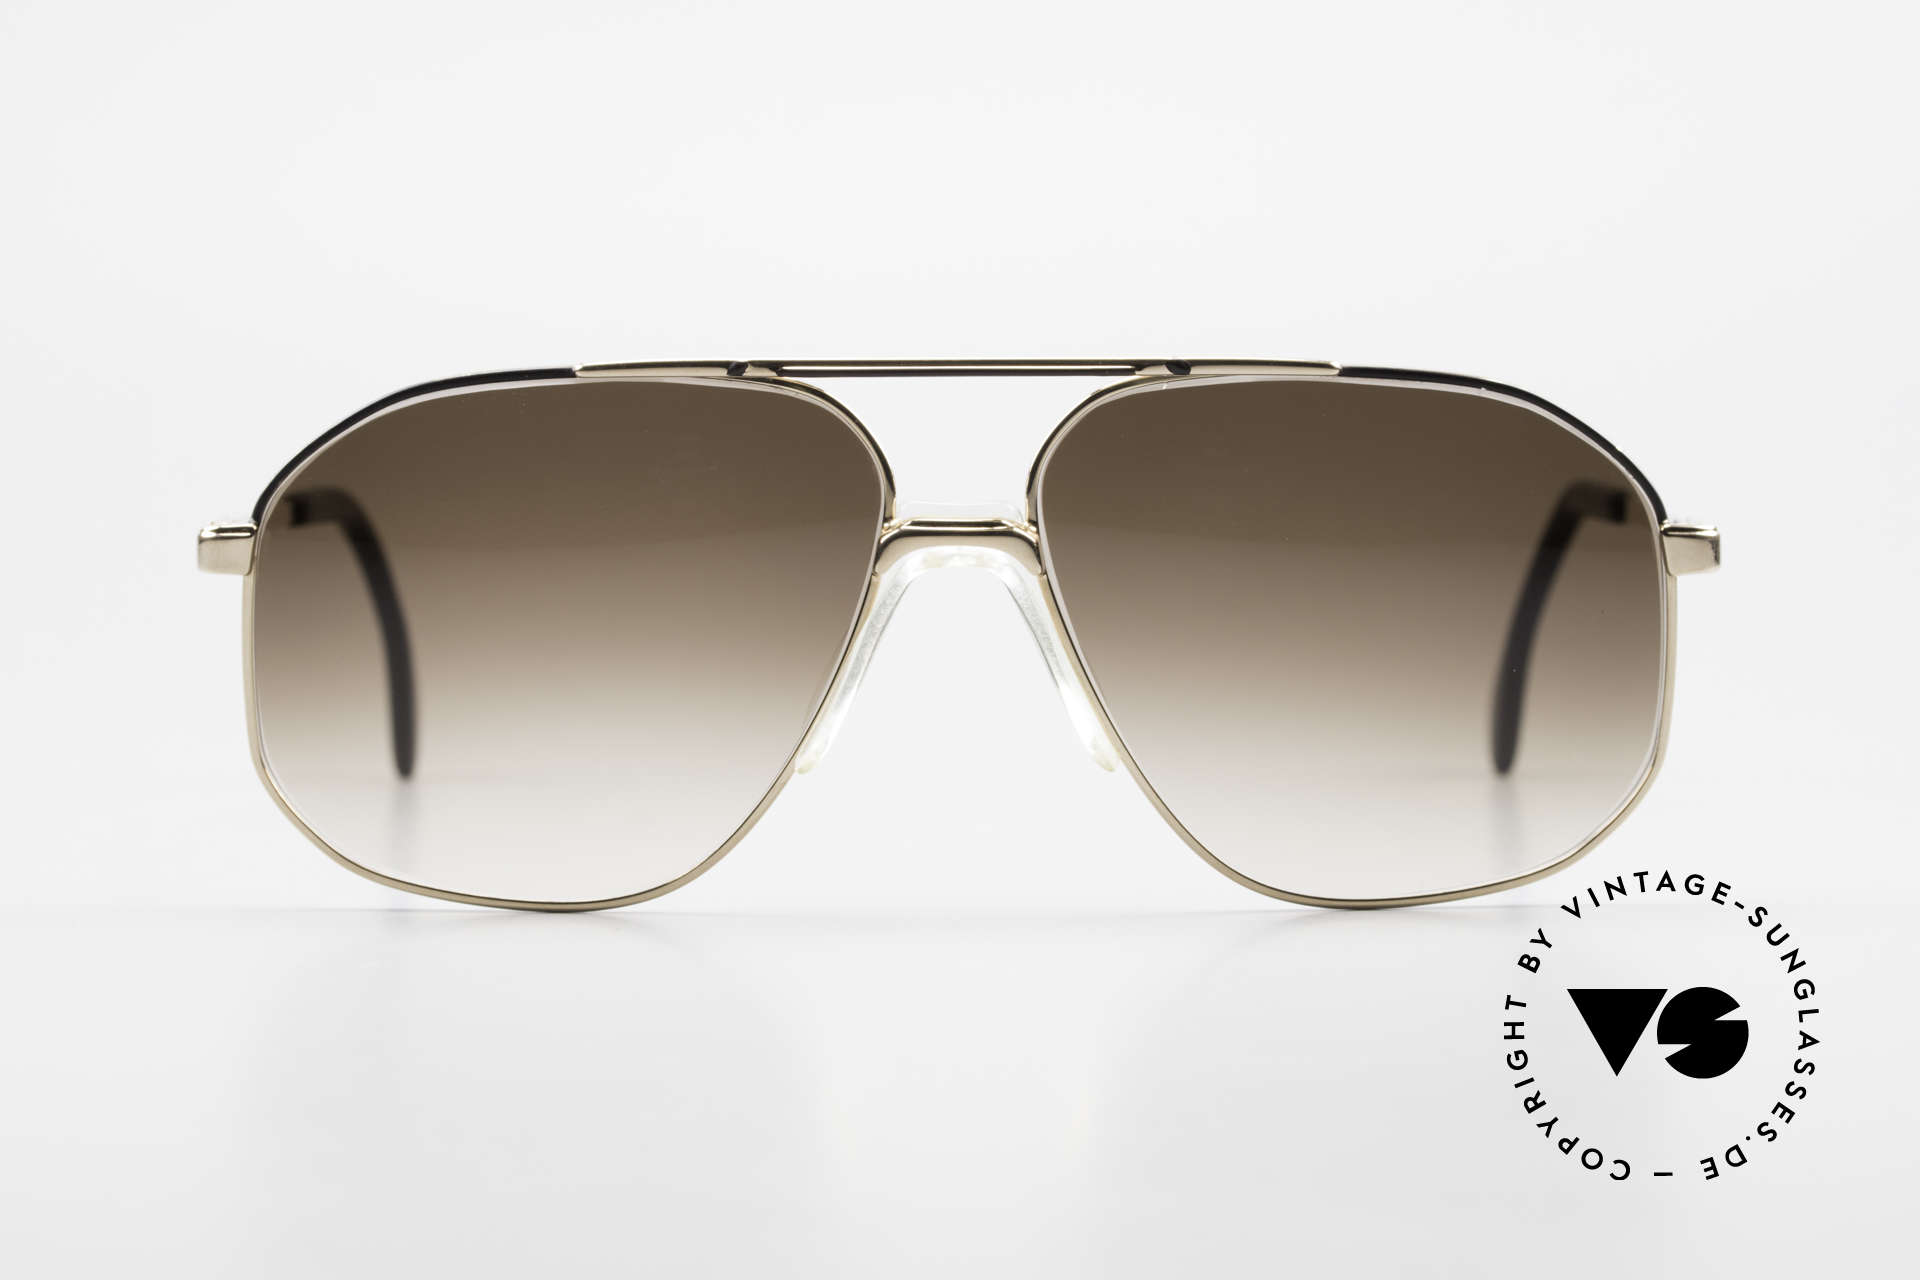 Zeiss 5906 Old 80's Quality Aviator Shades, top-notch 80's craftsmanship - You must feel this!, Made for Men